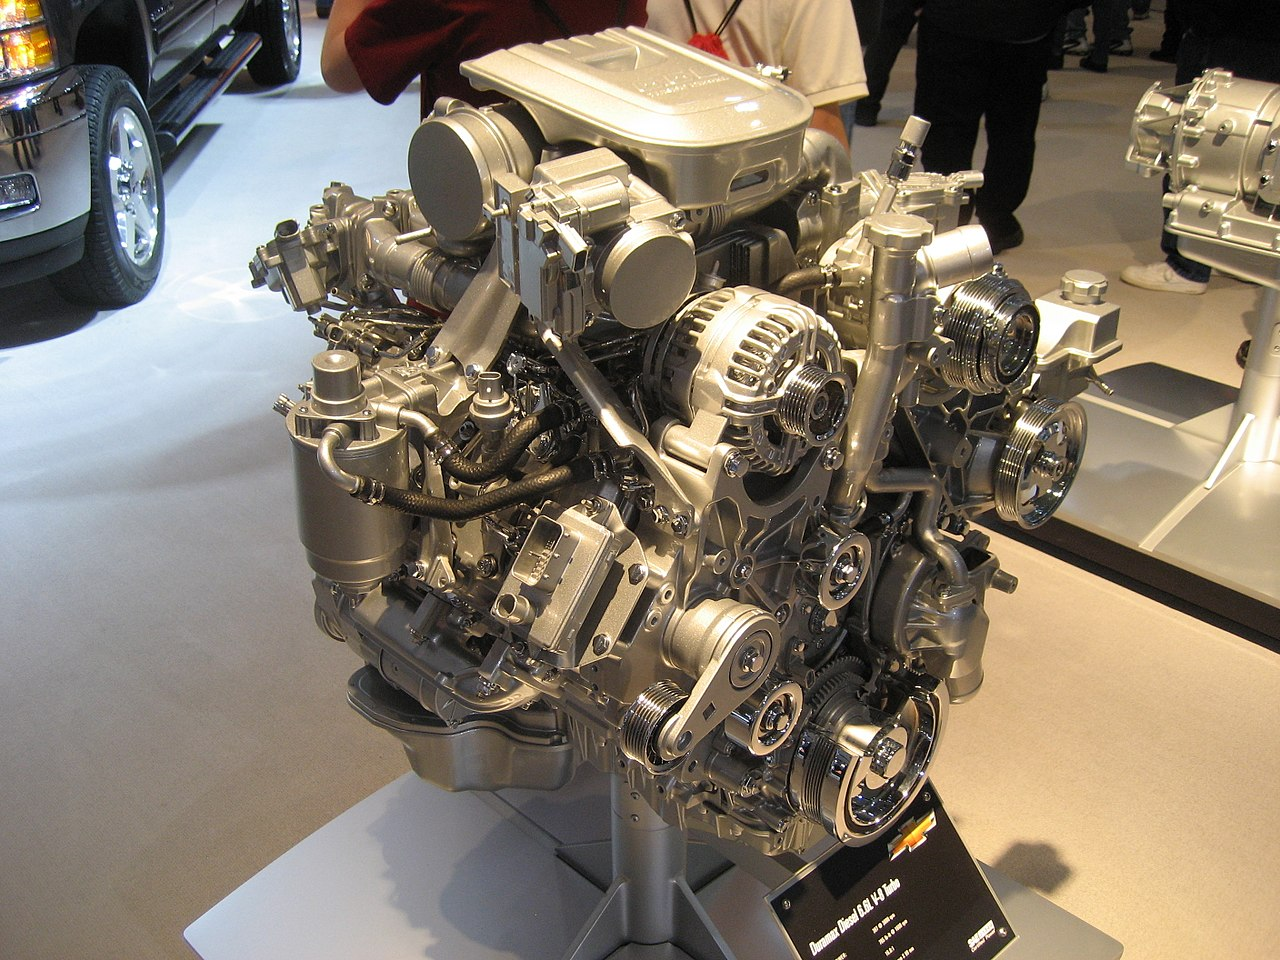 hight resolution of for the 2001 model year general motors finally replaced the detroit diesel 6 2l and 6 5l turbodiesel v8 s they had been using for 20 years with a new 6 6l